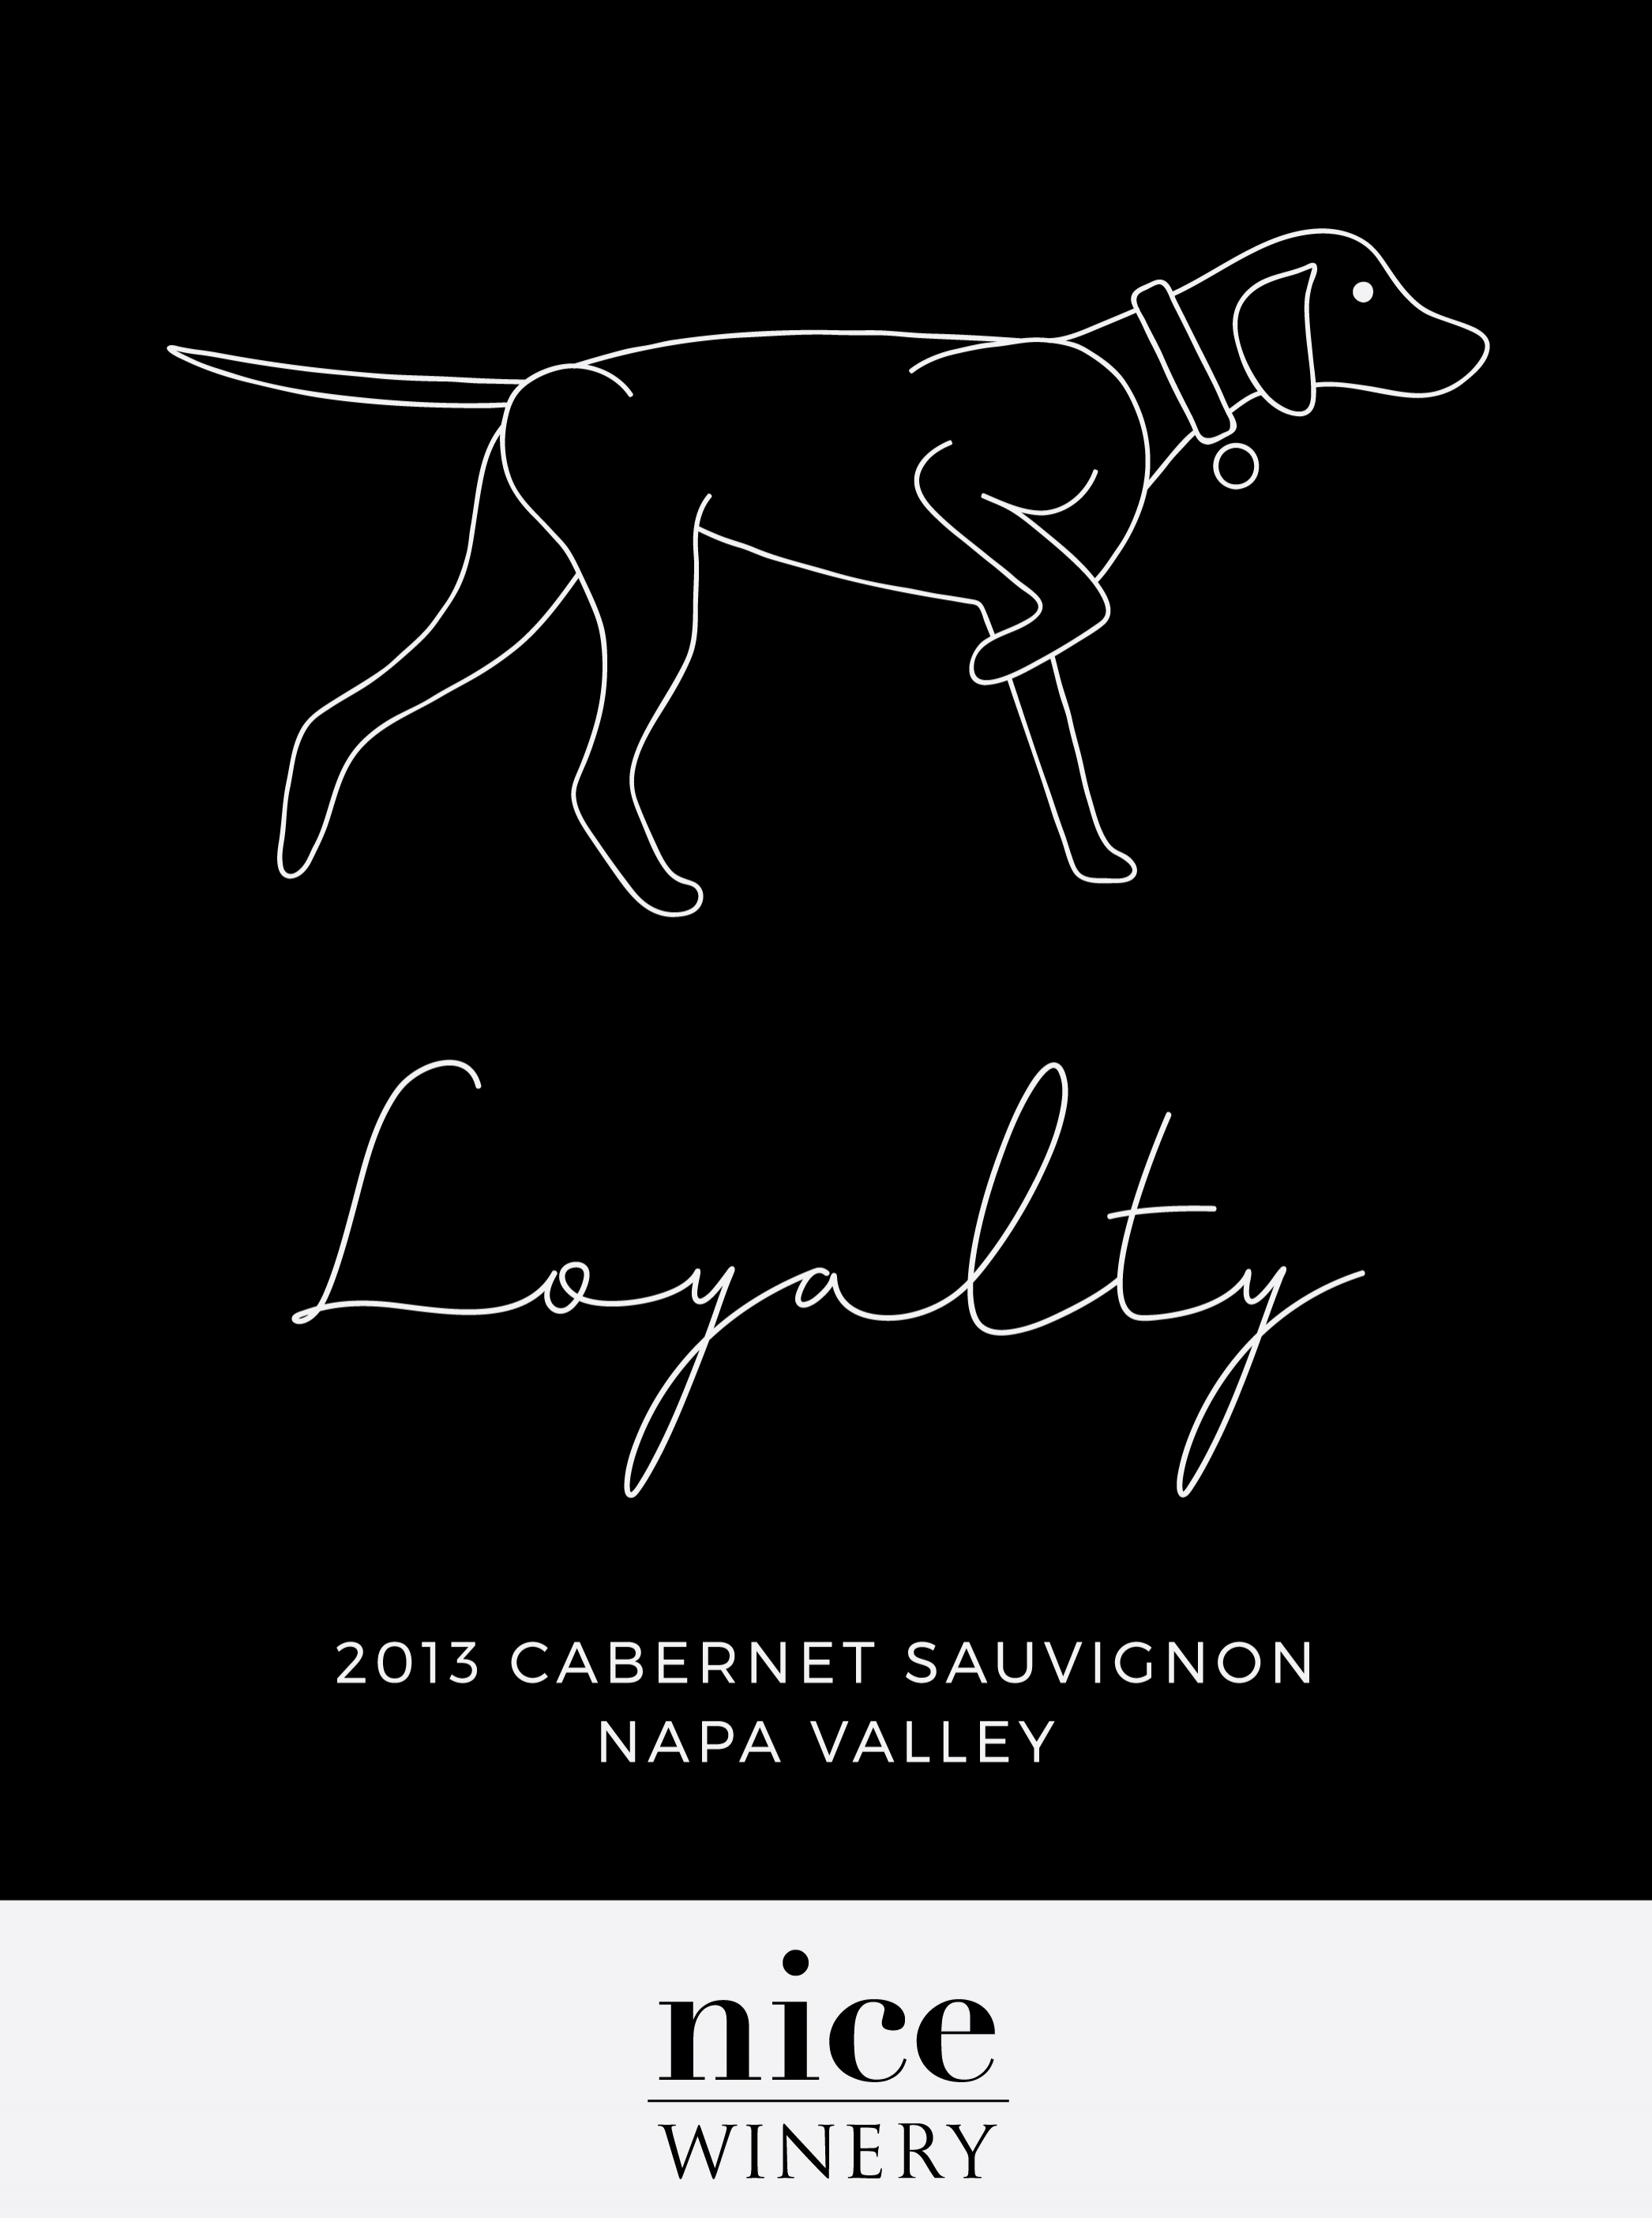 "Label for Nice Winery's limited run 2013 Cabernet Sauvignon, ""Loyalty"""